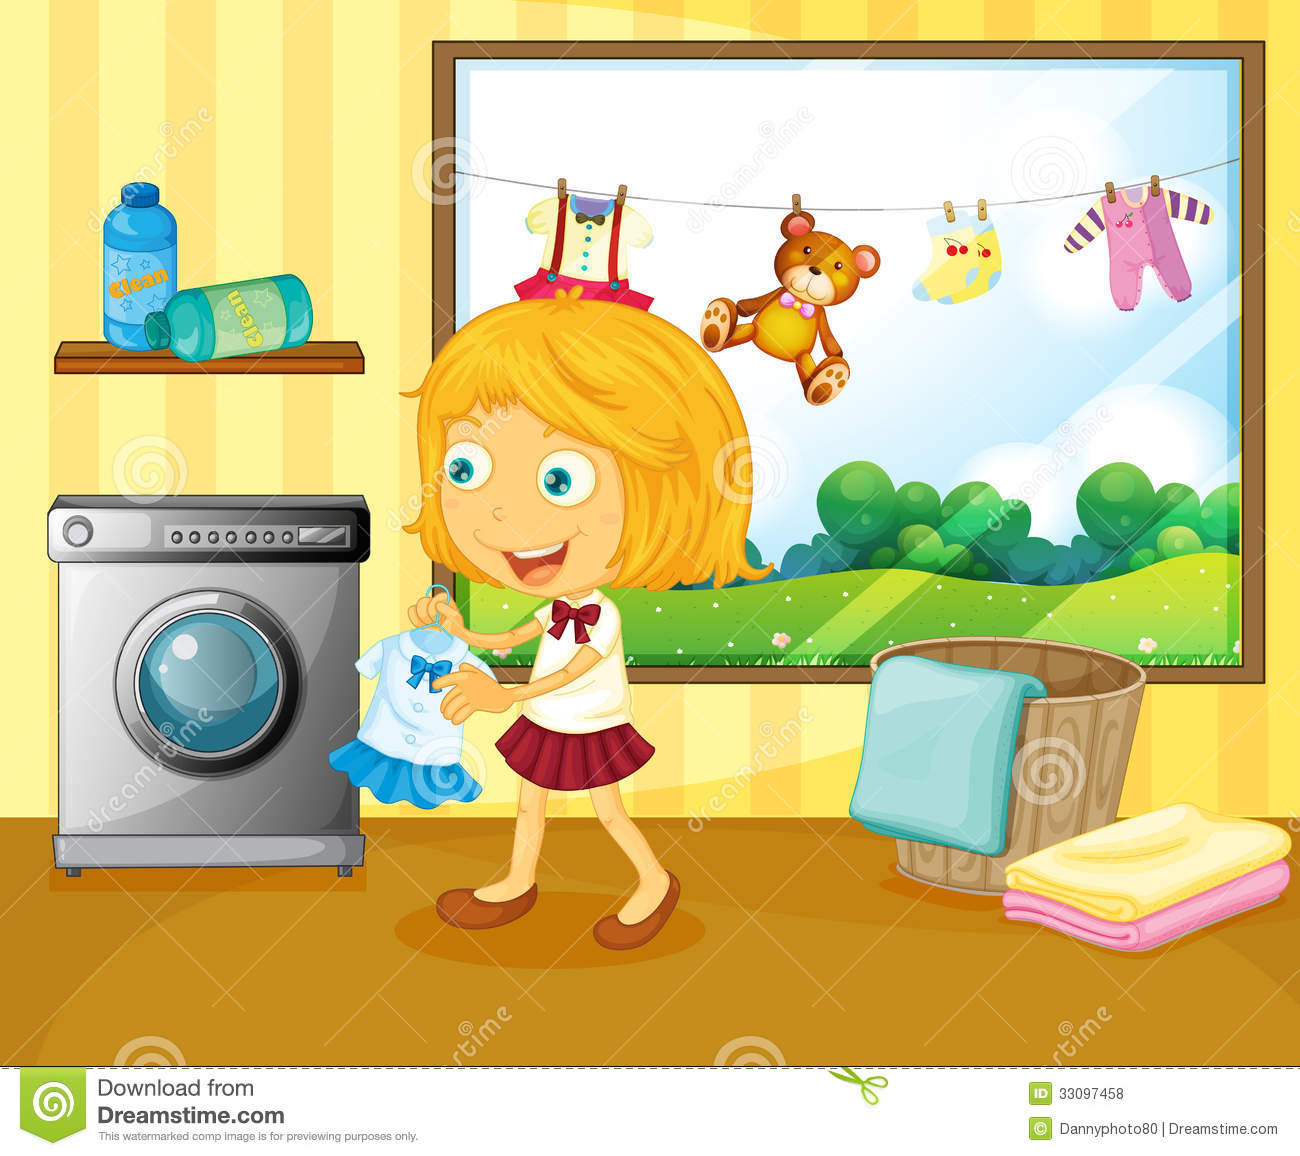 Bird house clipart free download clip art free clip art on - A Girl Washing Her Clothes Royalty Free Stock Photos